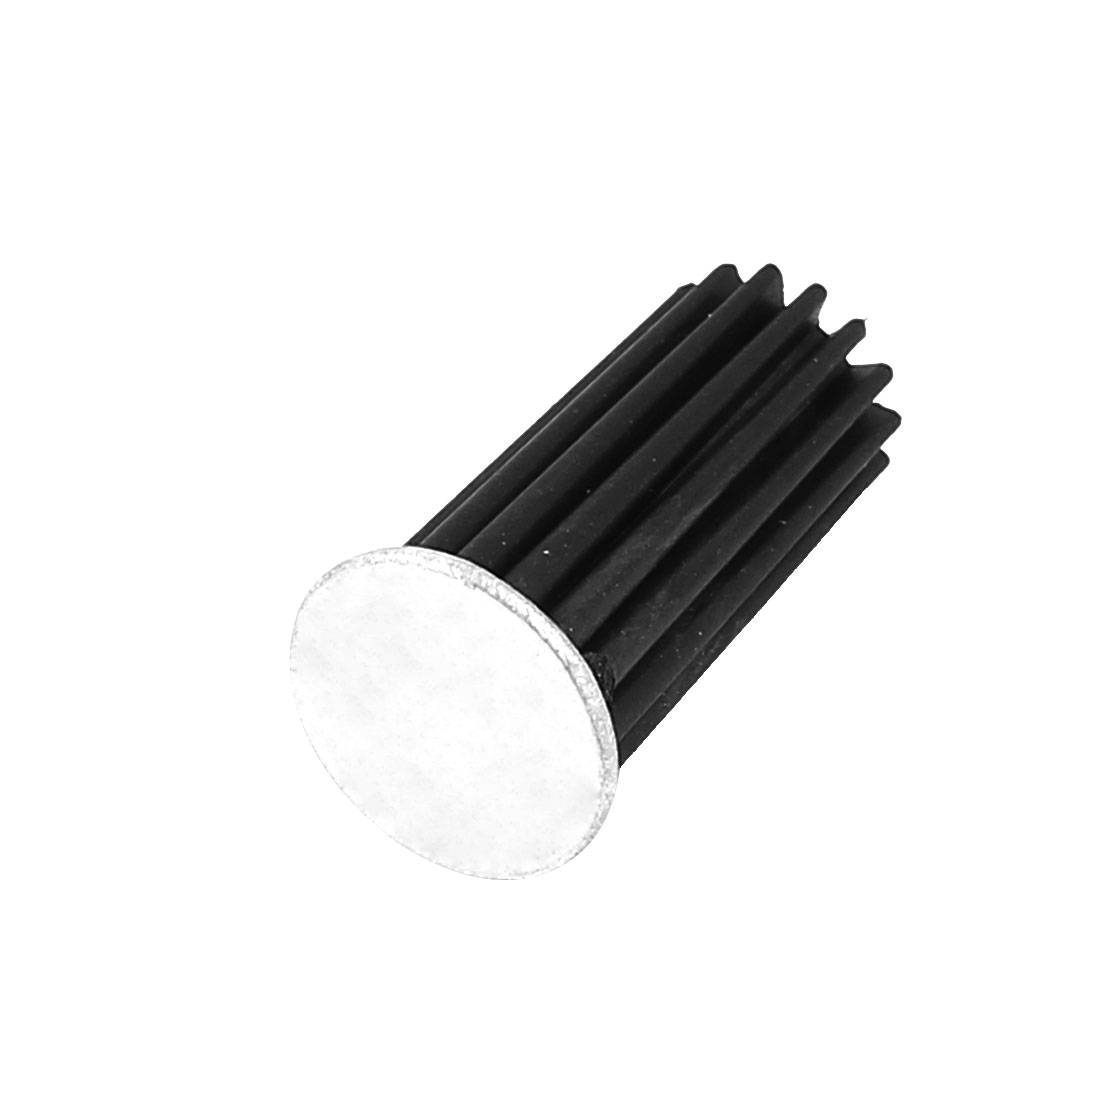 12mm x 22.7mm 1W Power LED Light Heatsink Graphite Cooling Fin